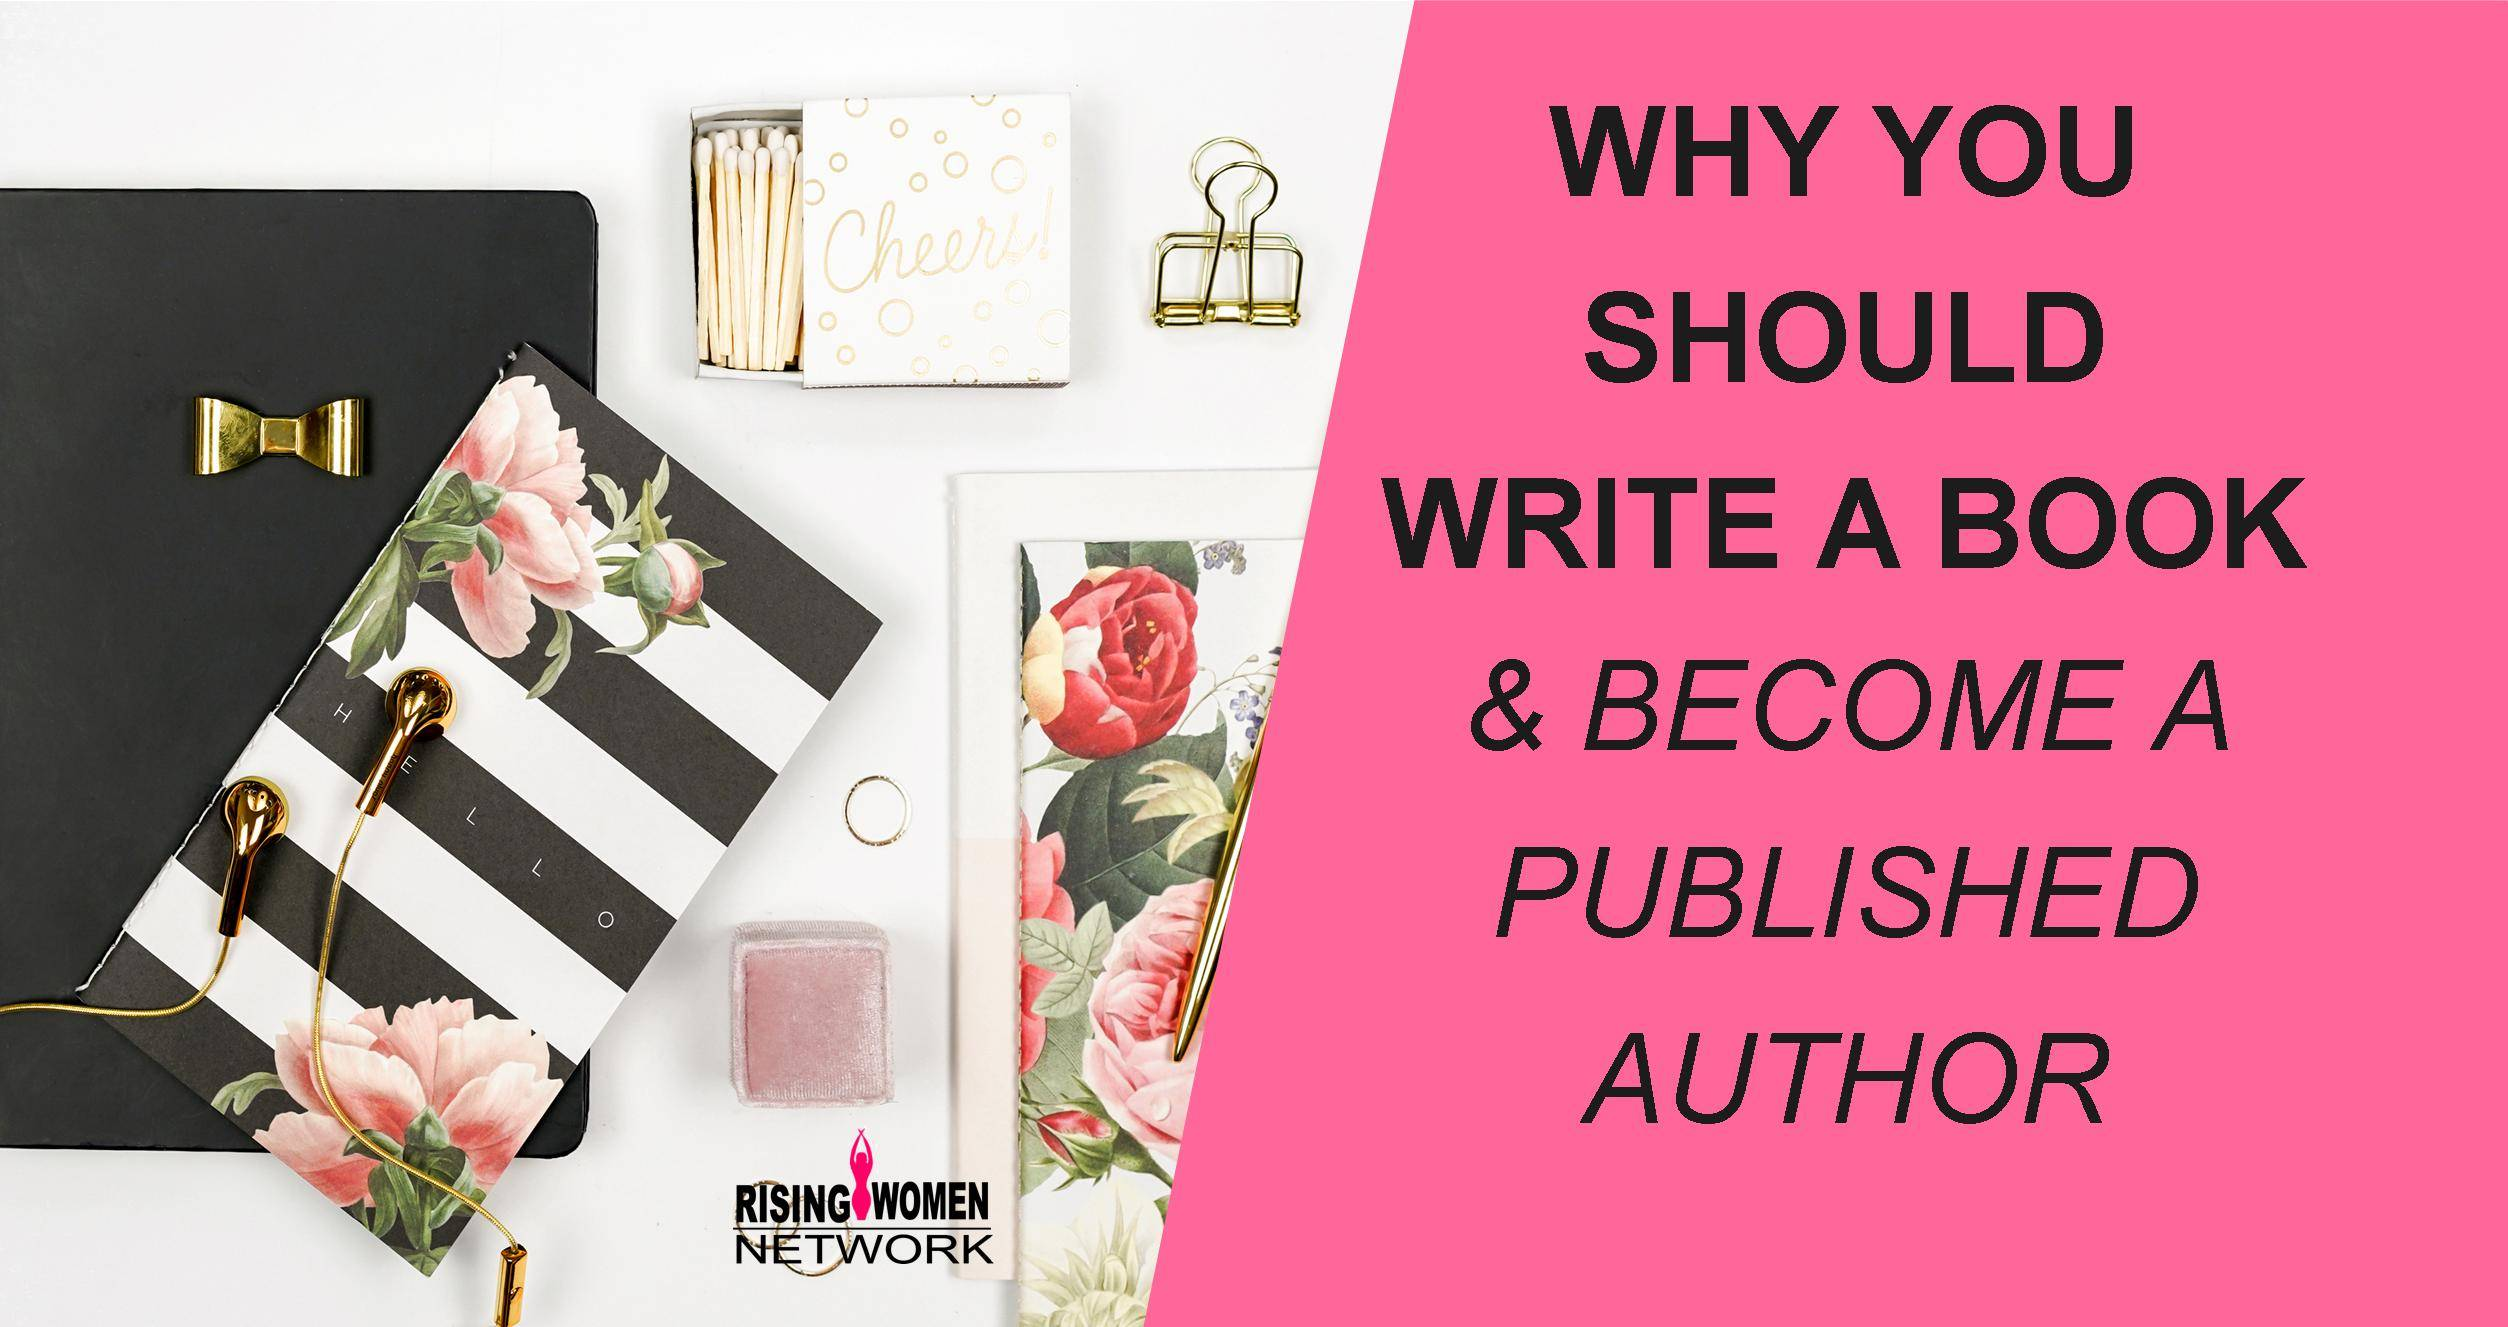 There are several reasons why I decided to be a published author. The biggest reason was to spread my message about subjects that I felt very passionate about